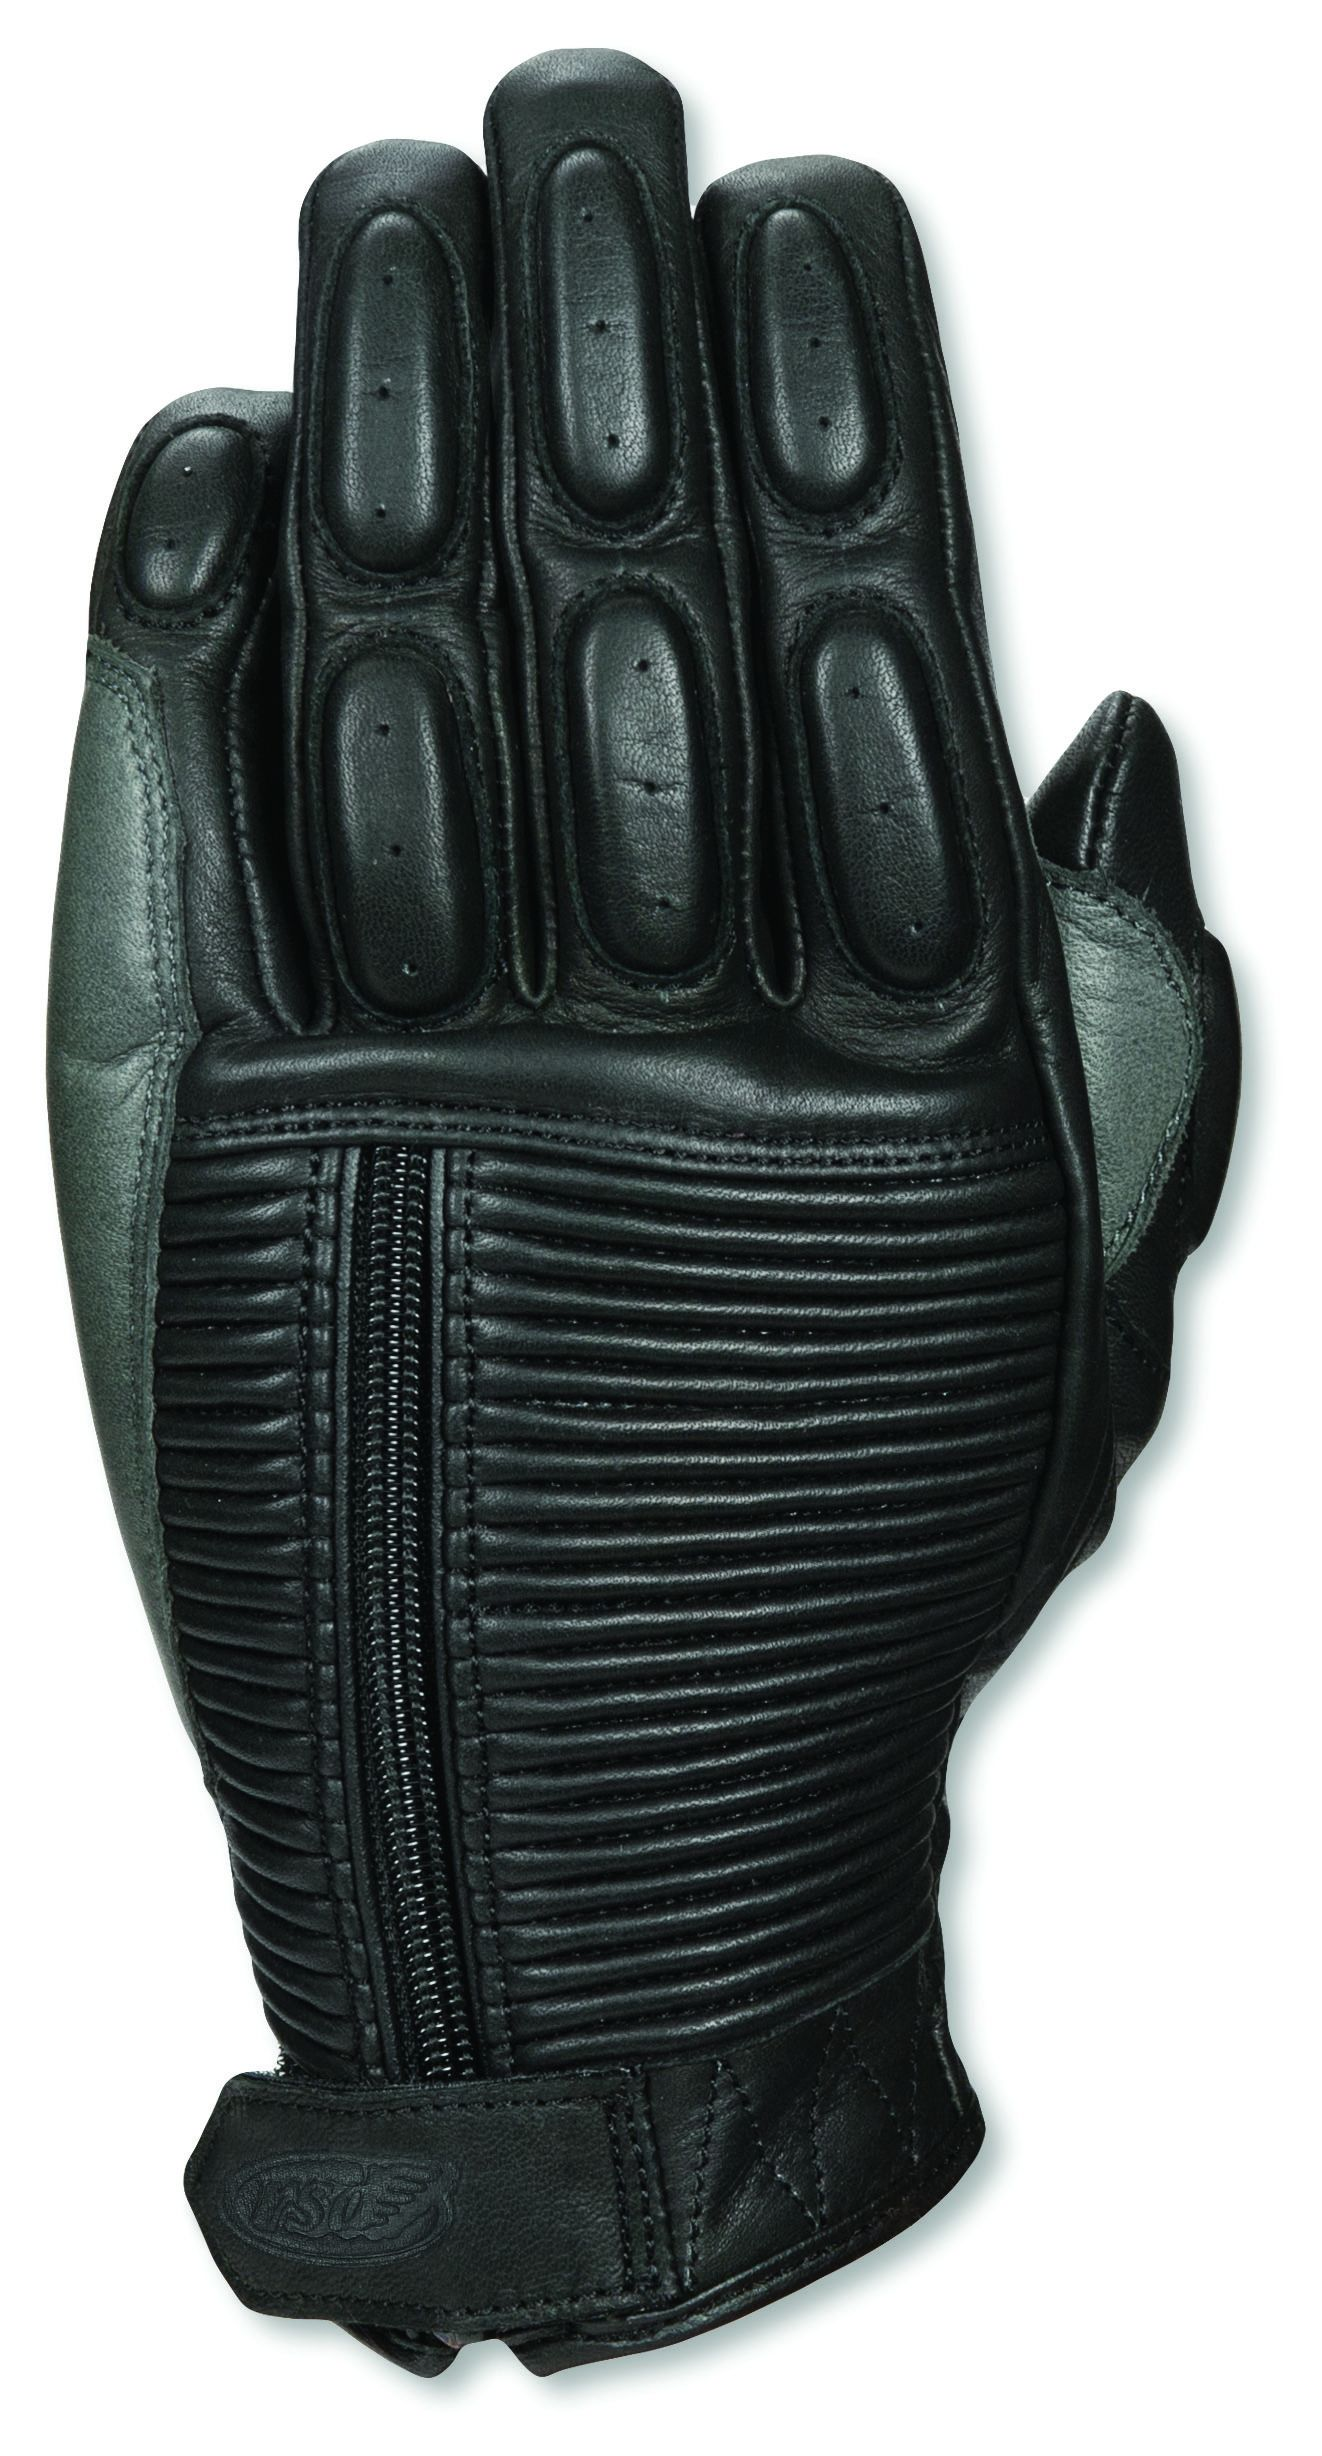 Motorcycle gloves tight or loose - Motorcycle Gloves Tight Or Loose 6